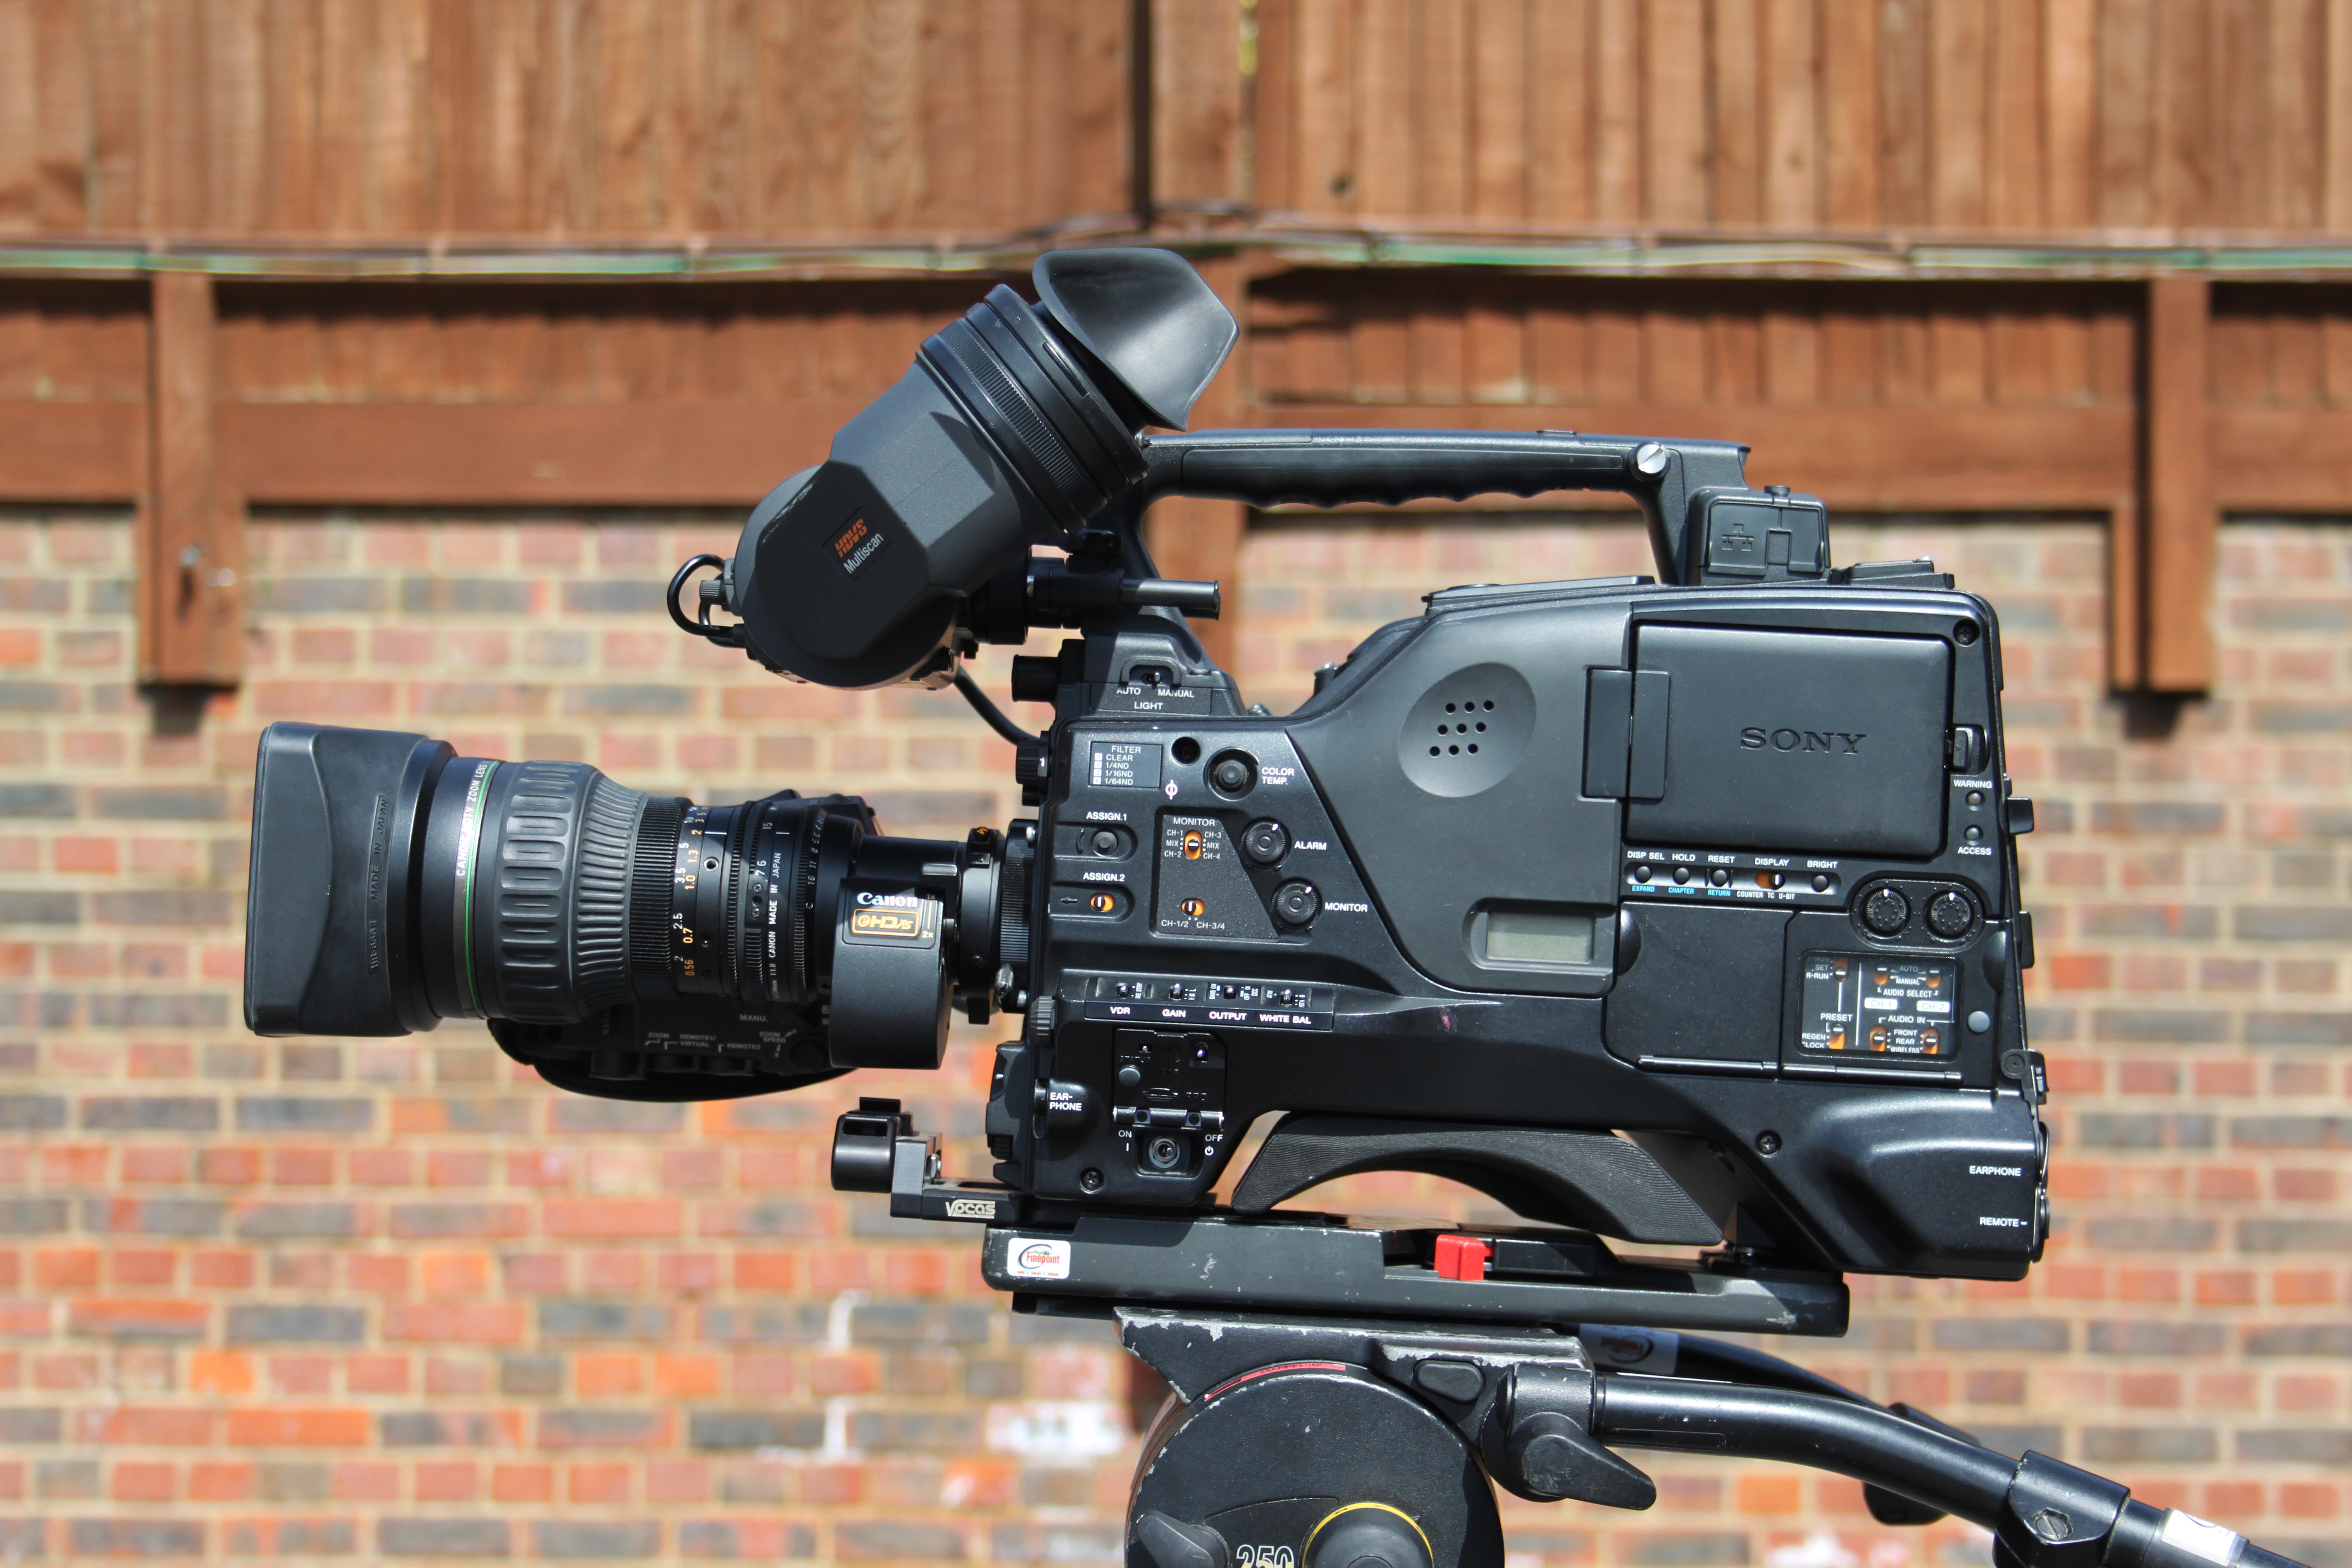 Sony PDW-700 Broadcast Camera Complete Kit